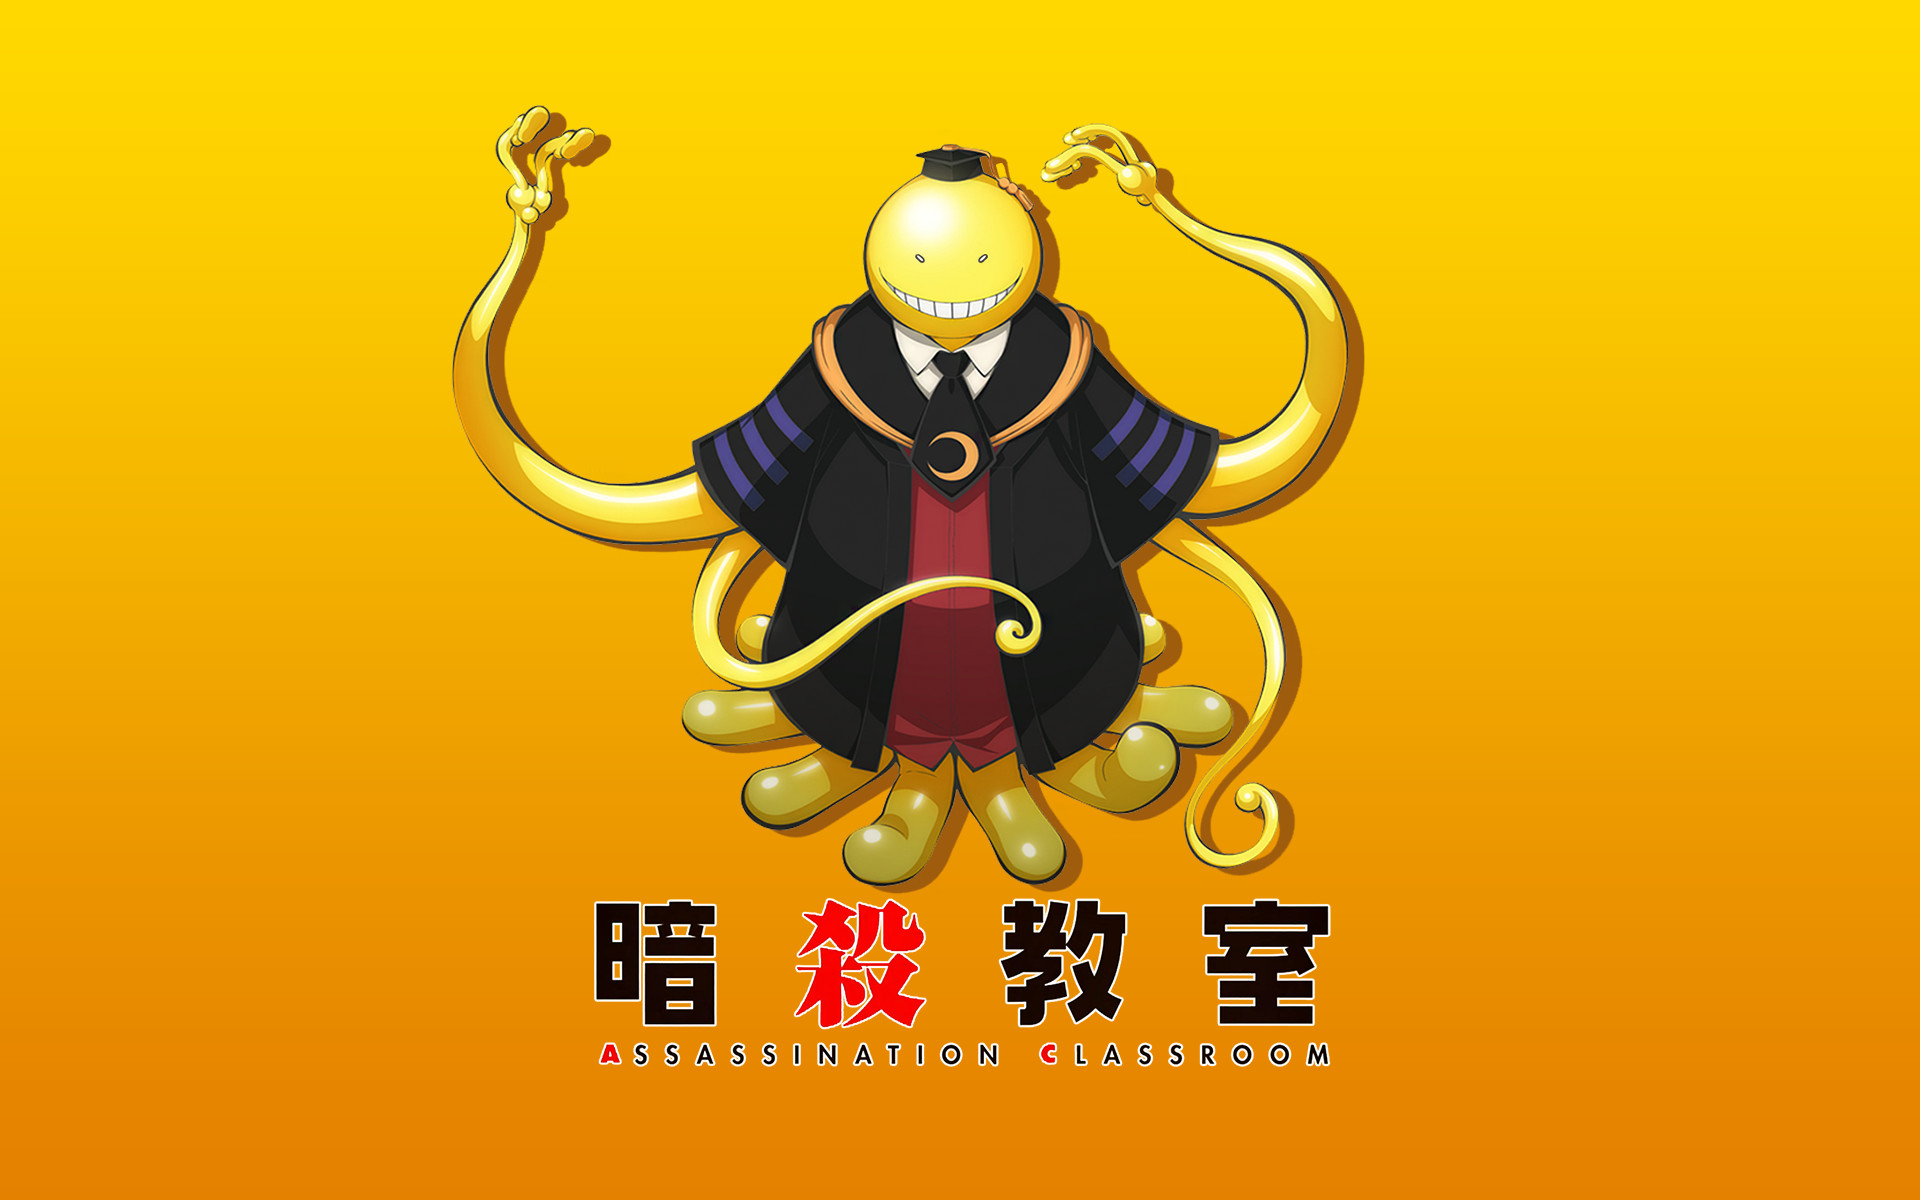 1920x1200 83 Assassination Classroom HD Wallpapers | Backgrounds - Wallpaper .